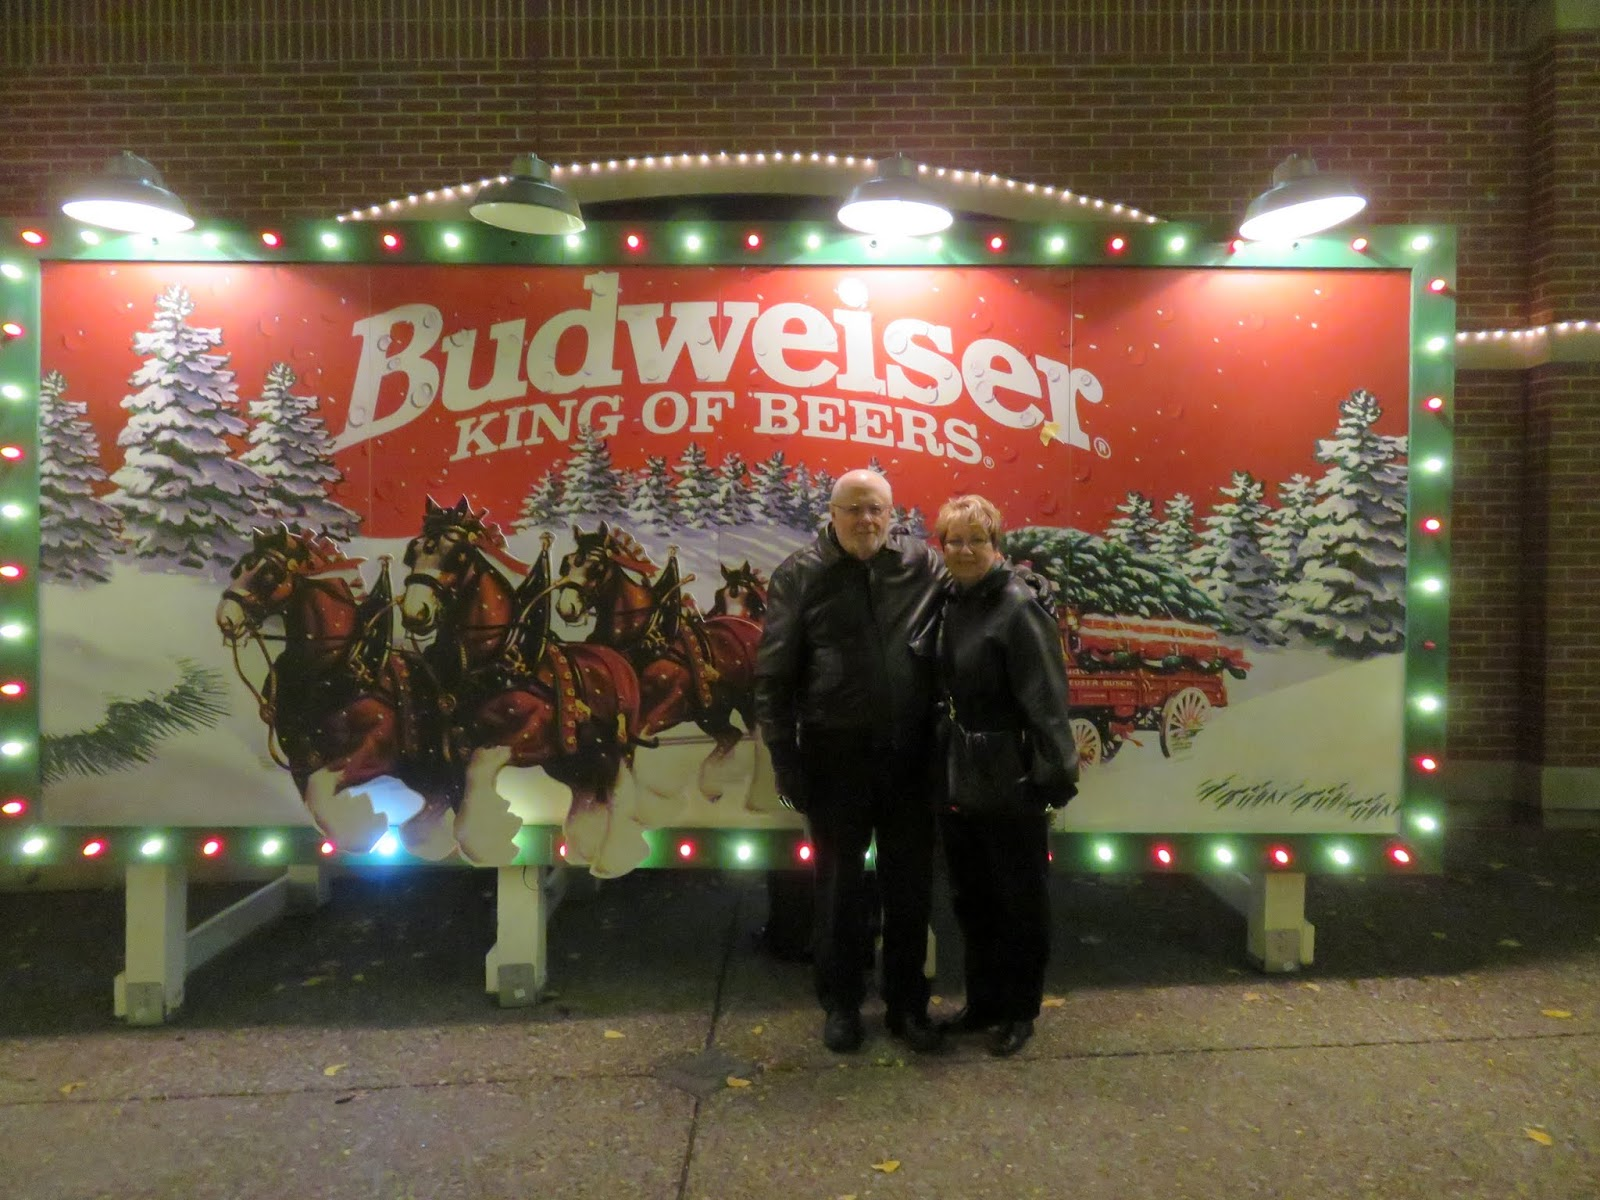 Anheuser Busch Brewery Christmas Lights